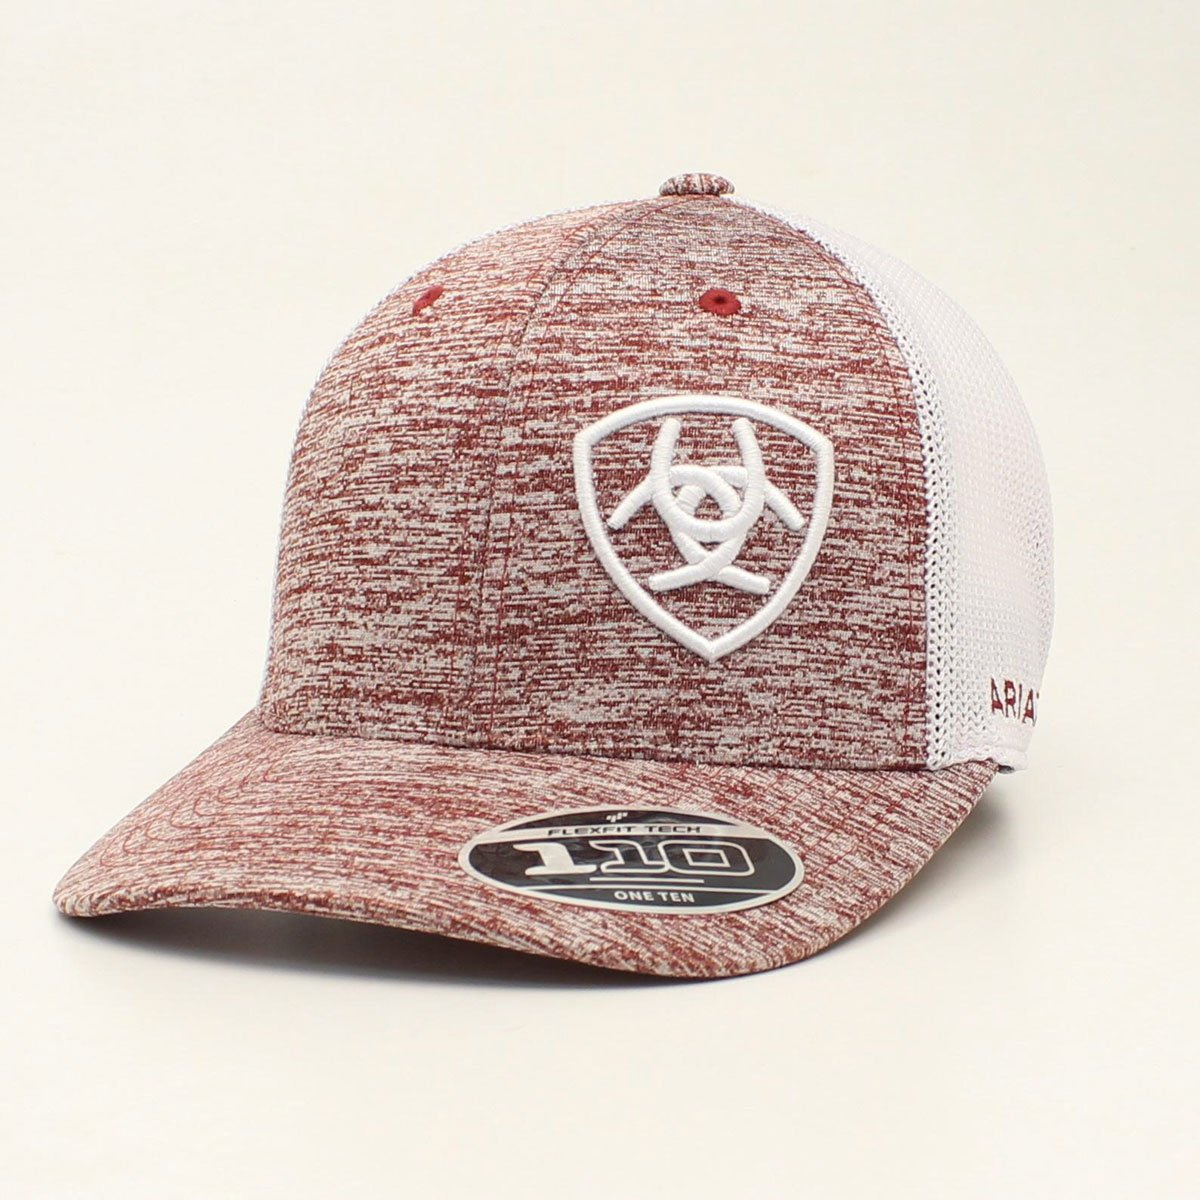 Embroidered Ariat Logo Hat from Ariat